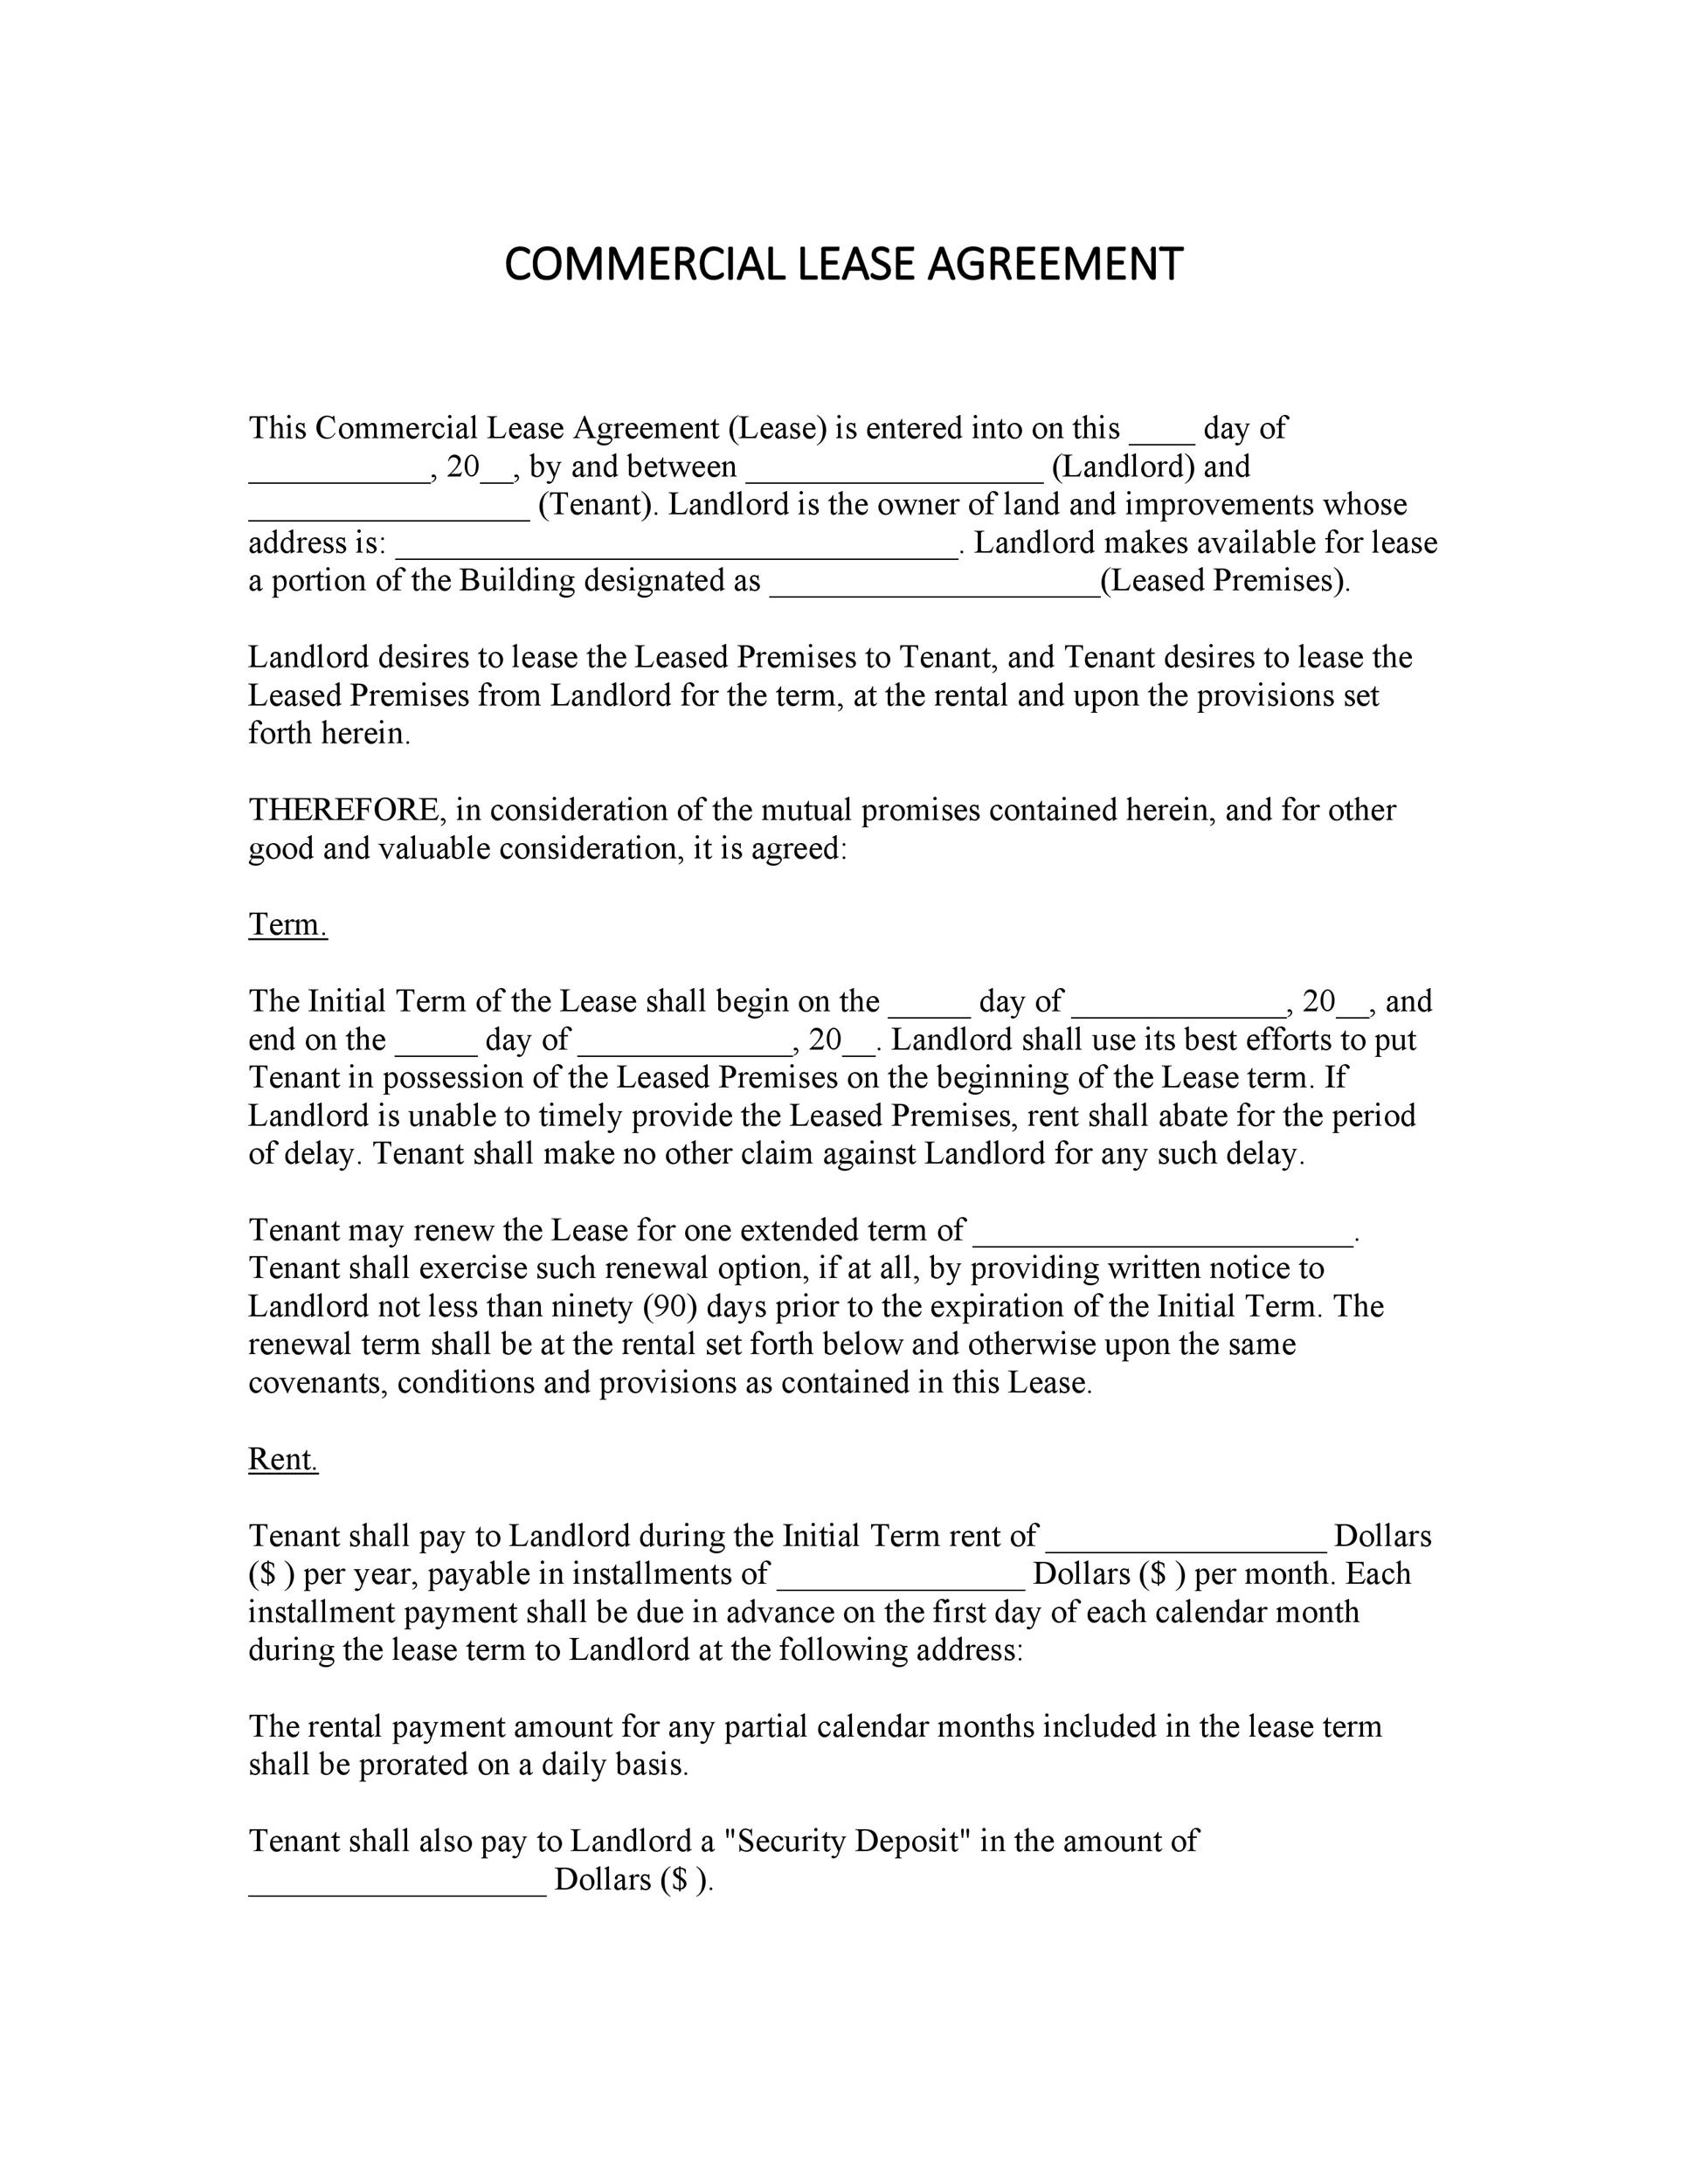 Simple Agreement Commercial Lease Agreement Template Free